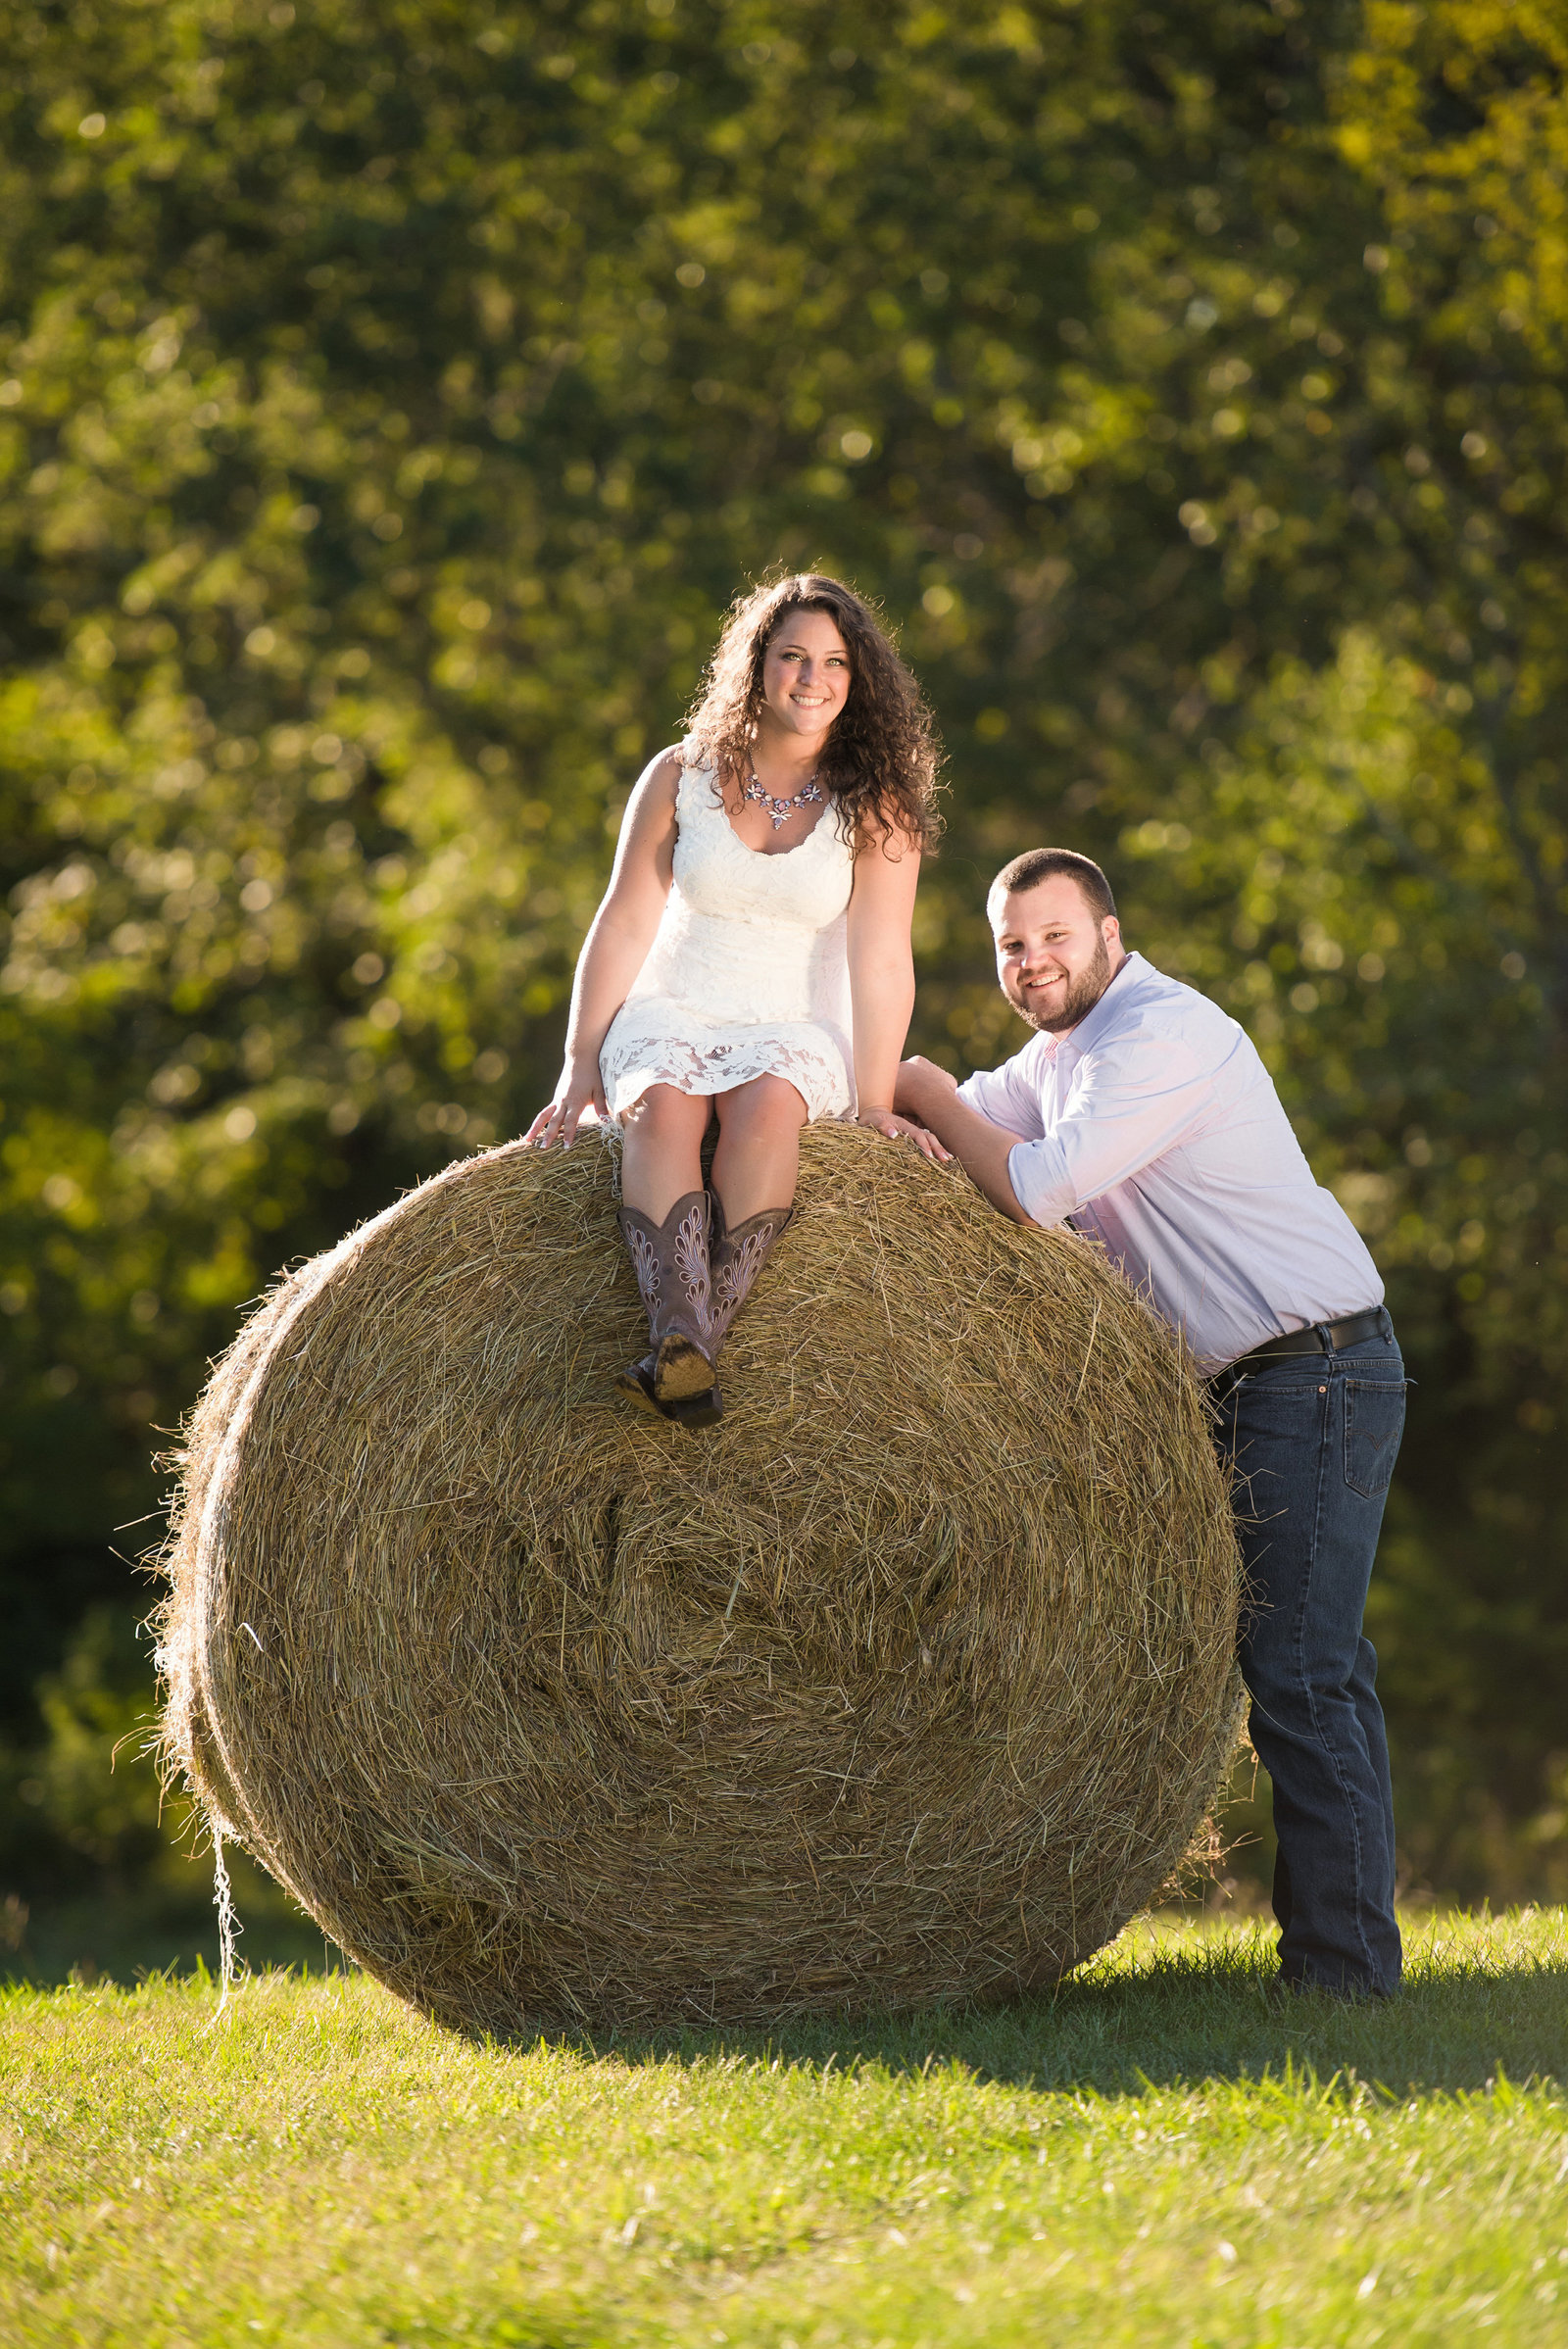 NJ_Rustic_Engagement_Photography007